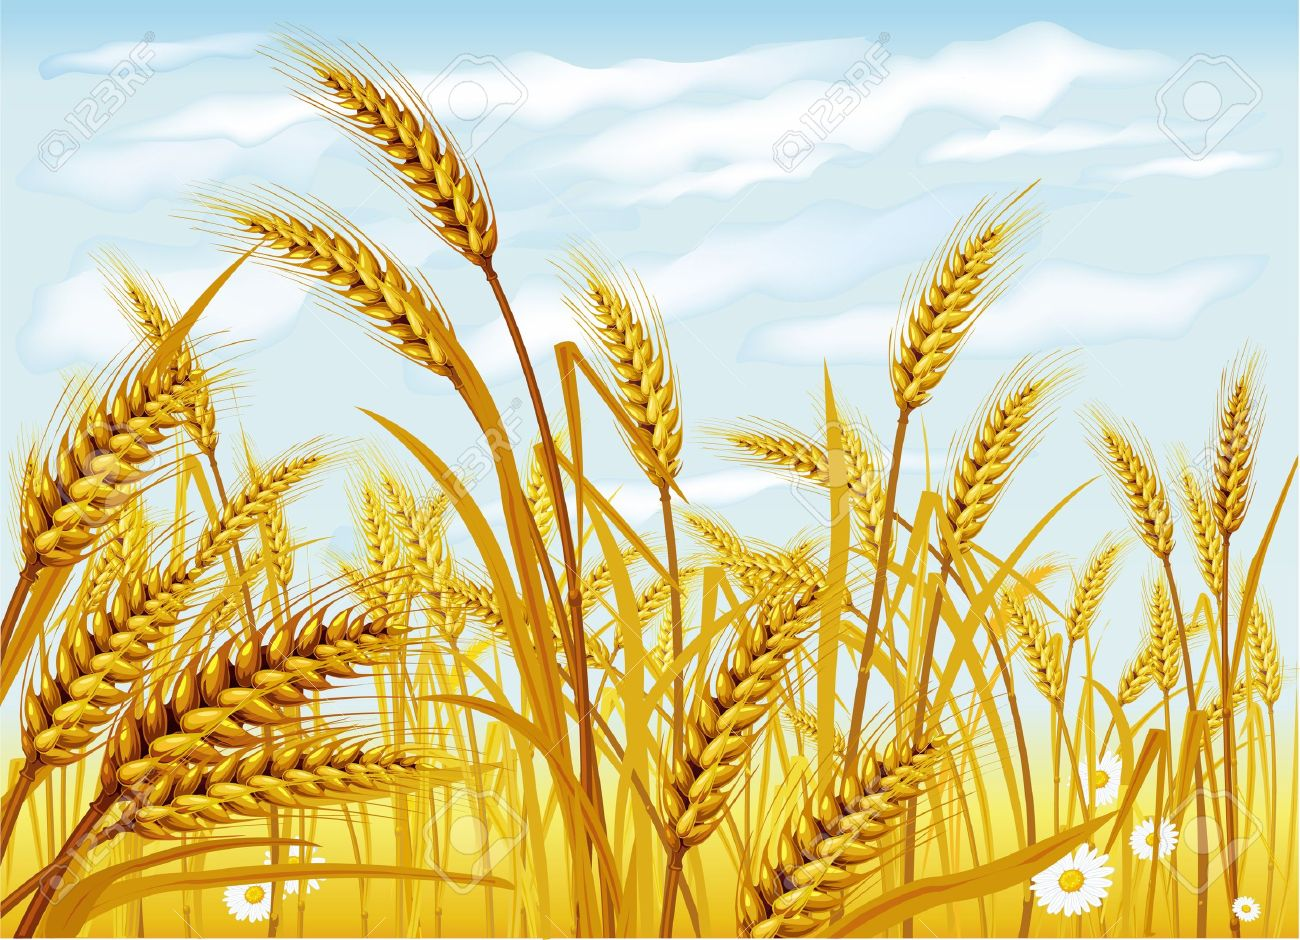 clipart Station . Wheat field clipart